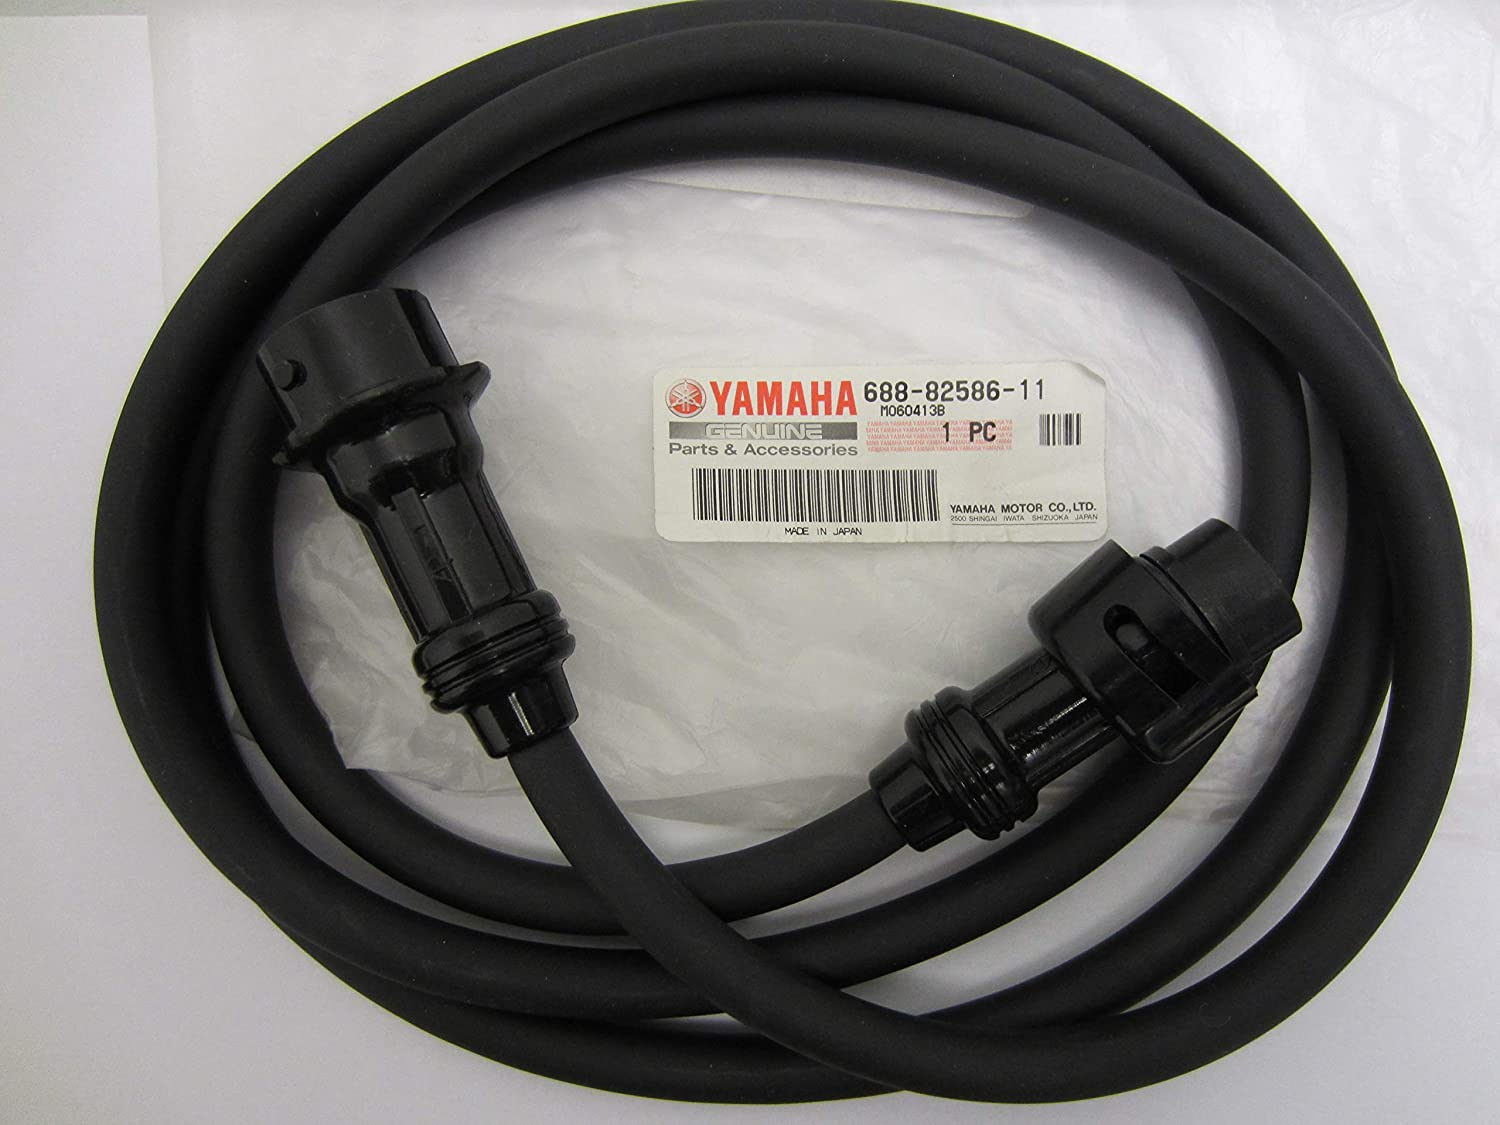 Amazon.com: OEM Yamaha Outboard 7-Pin 6.6' Main Wiring Harness ... on omc remote control, omc fuel tank, omc cobra outdrive, omc cobra parts diagram, omc oil cooler, omc gauges, omc inboard outboard wiring diagrams, omc neutral safety switch, omc voltage regulator, omc control box,